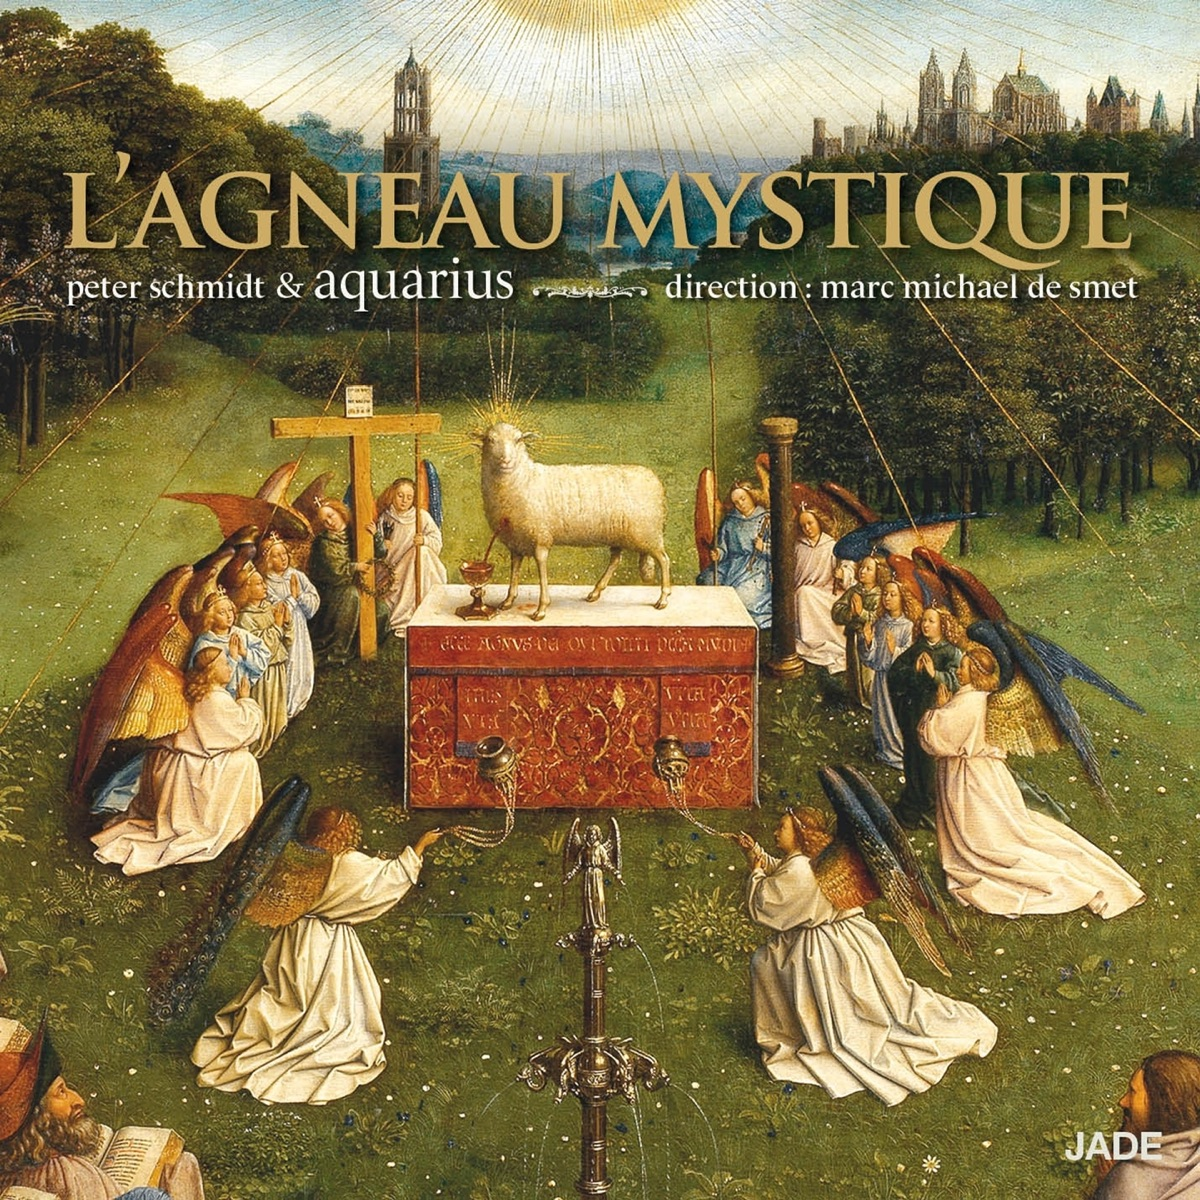 Lagneau mystique Aquarius  Peter Schmidt CD cover